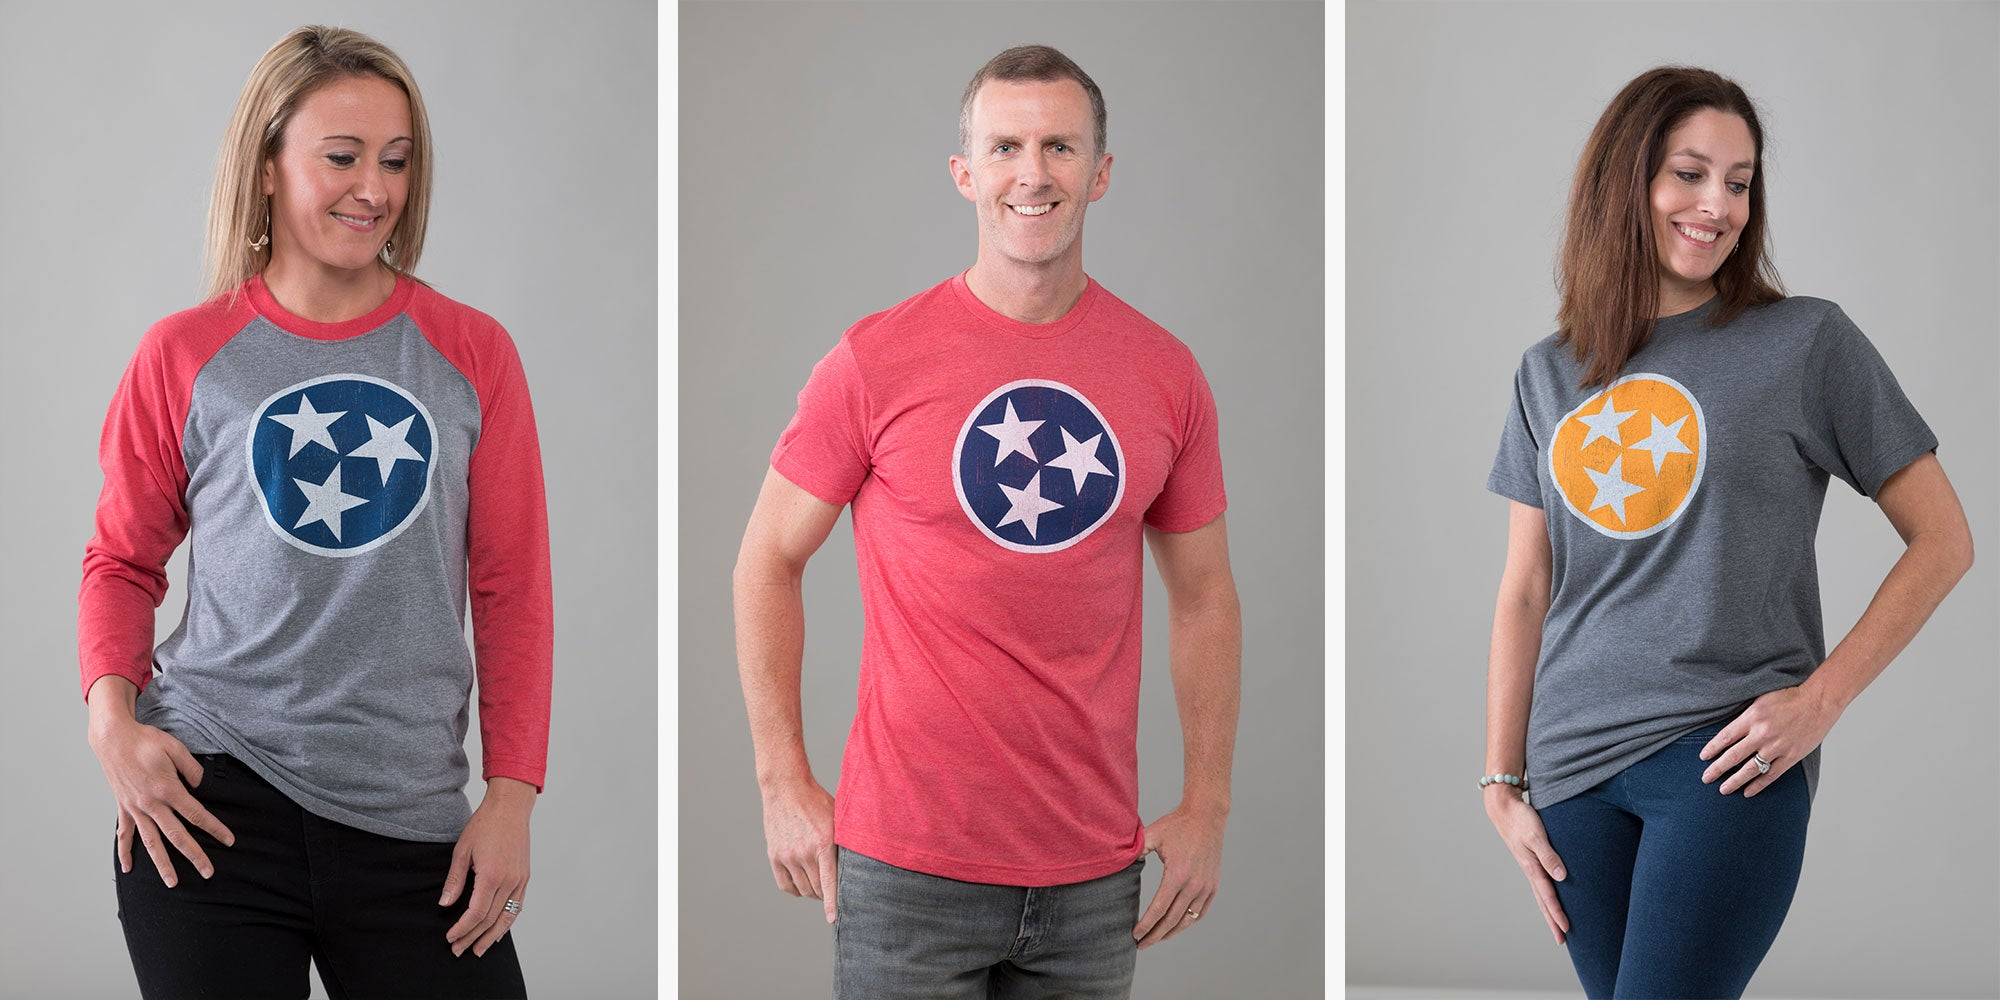 Wholesale Tennessee Tristar Shirts Tennessee Tri Star T Shirts Wholesale Tennessee Apparel